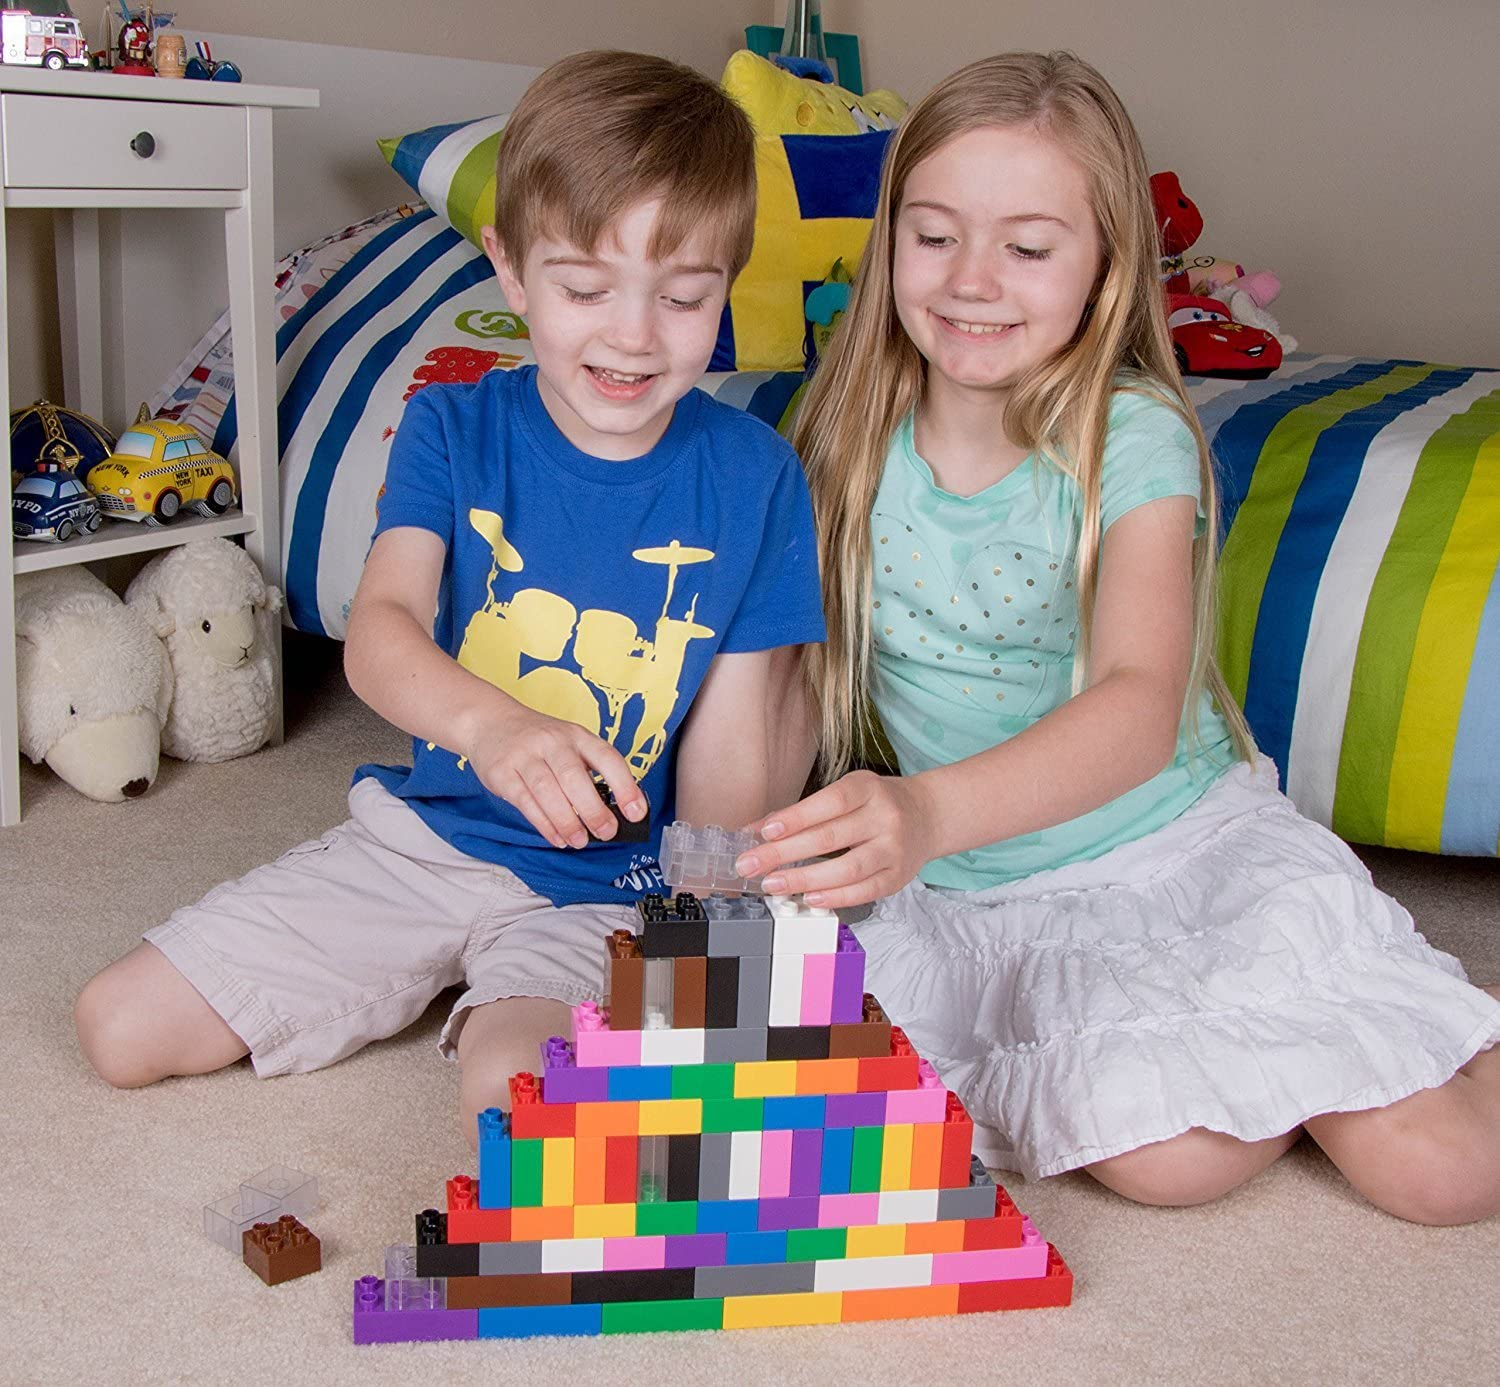 Strictly Briks 24 Rainbow Colors Compatible with All Major Brands Large Building Blocks for Ages 3 and Up 204 Pieces Big Briks Set